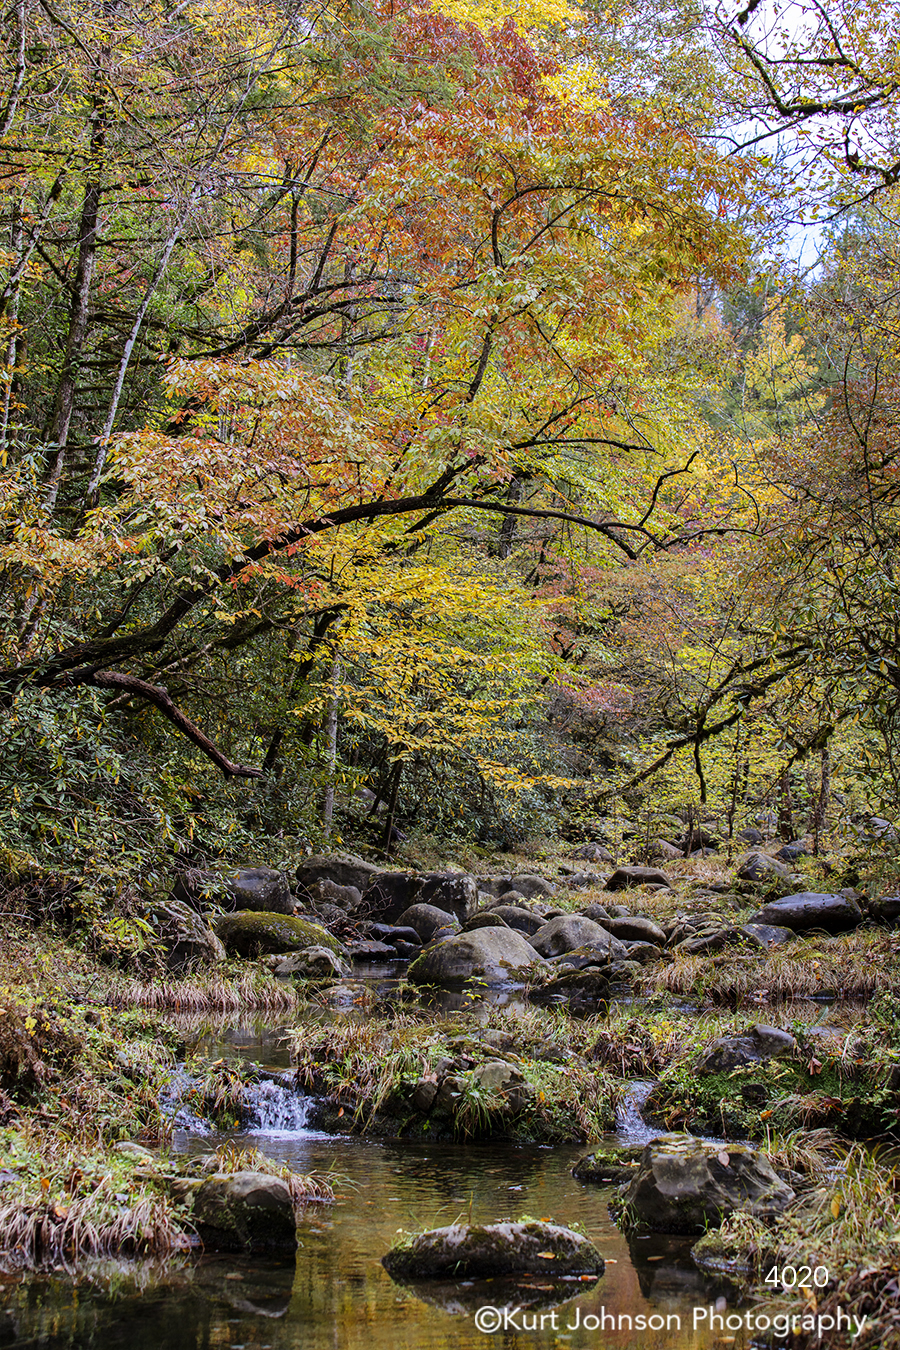 autumn fall leaves forest water waterscape stream river rocks green moss orange yellow trees tree branches